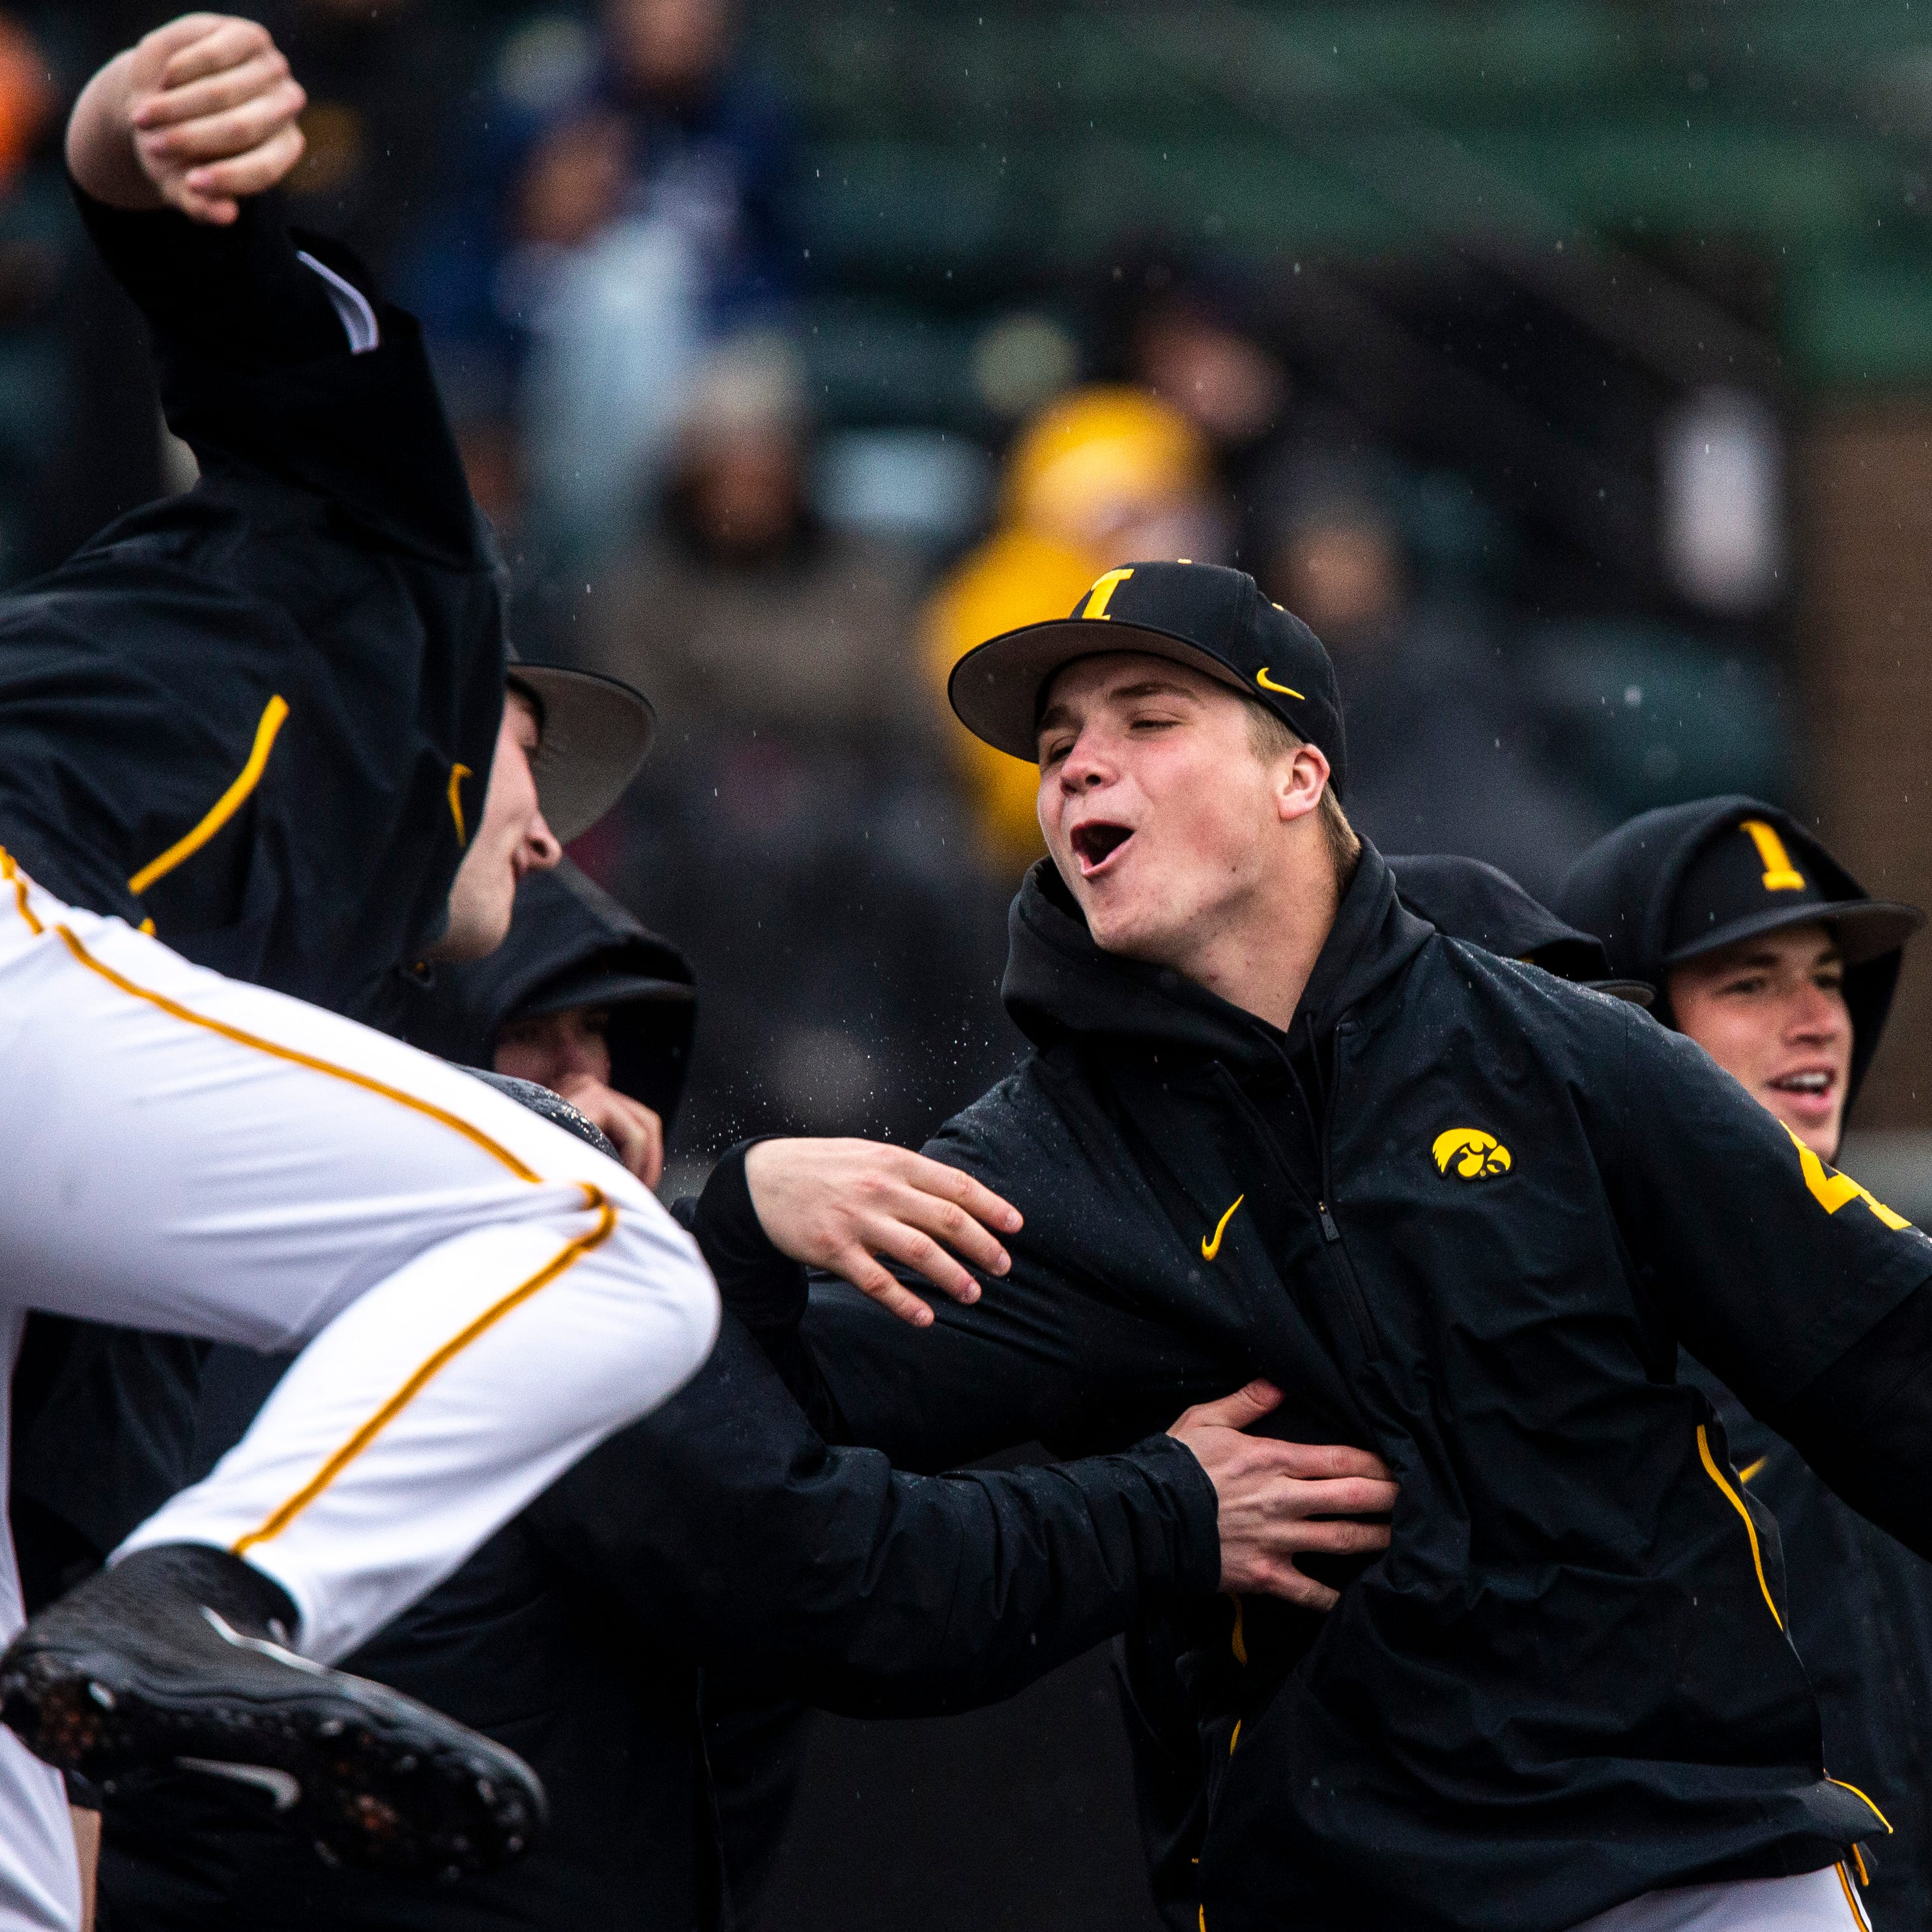 Iowa baseball: Ninth-inning rally lifts Hawkeyes to series-opening win over Nebraska